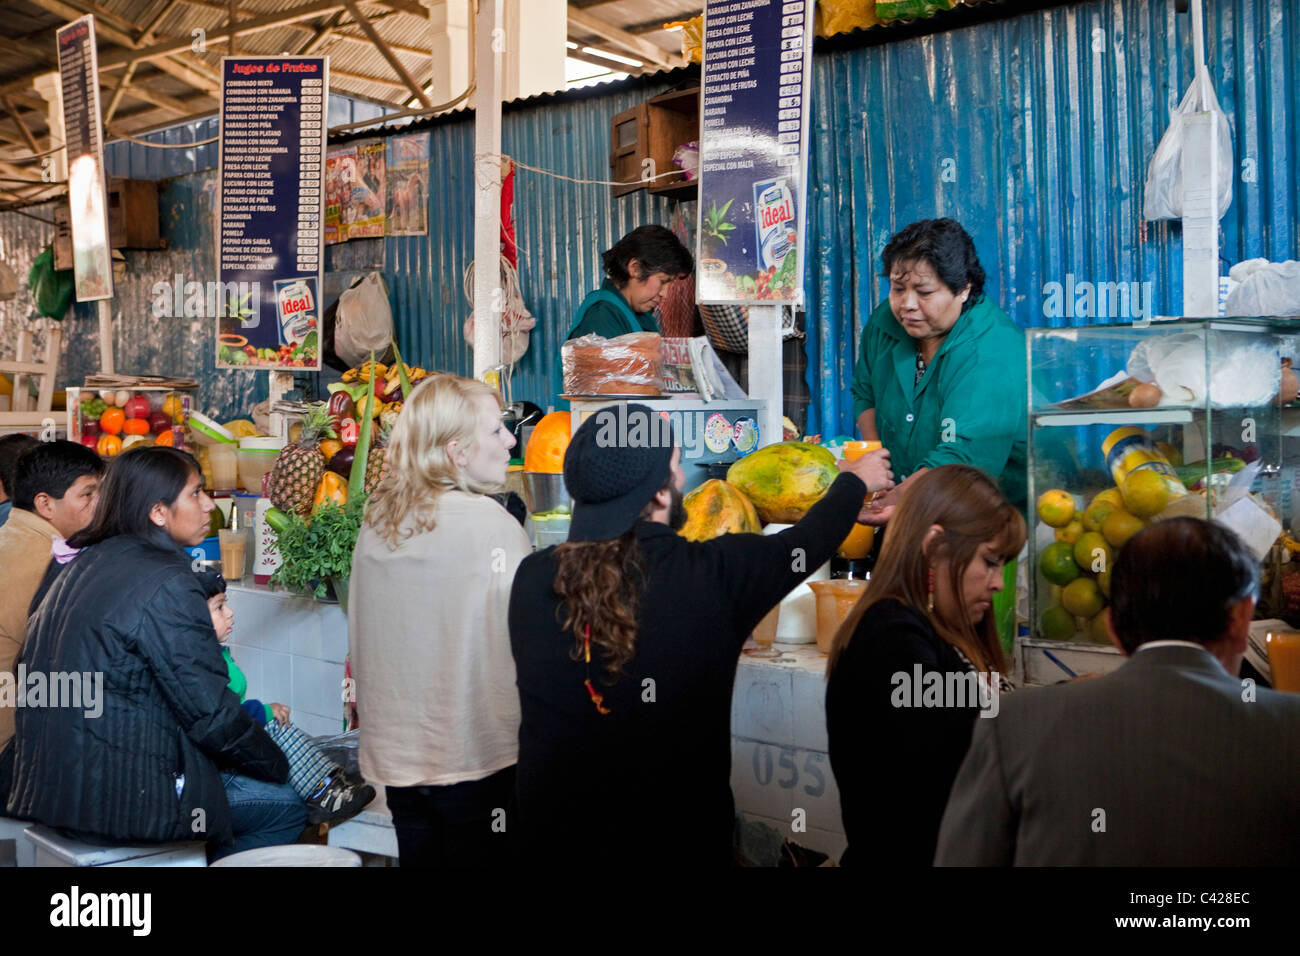 Peru, Cusco, Cuzco. Market, selling fruit juice. - Stock Image